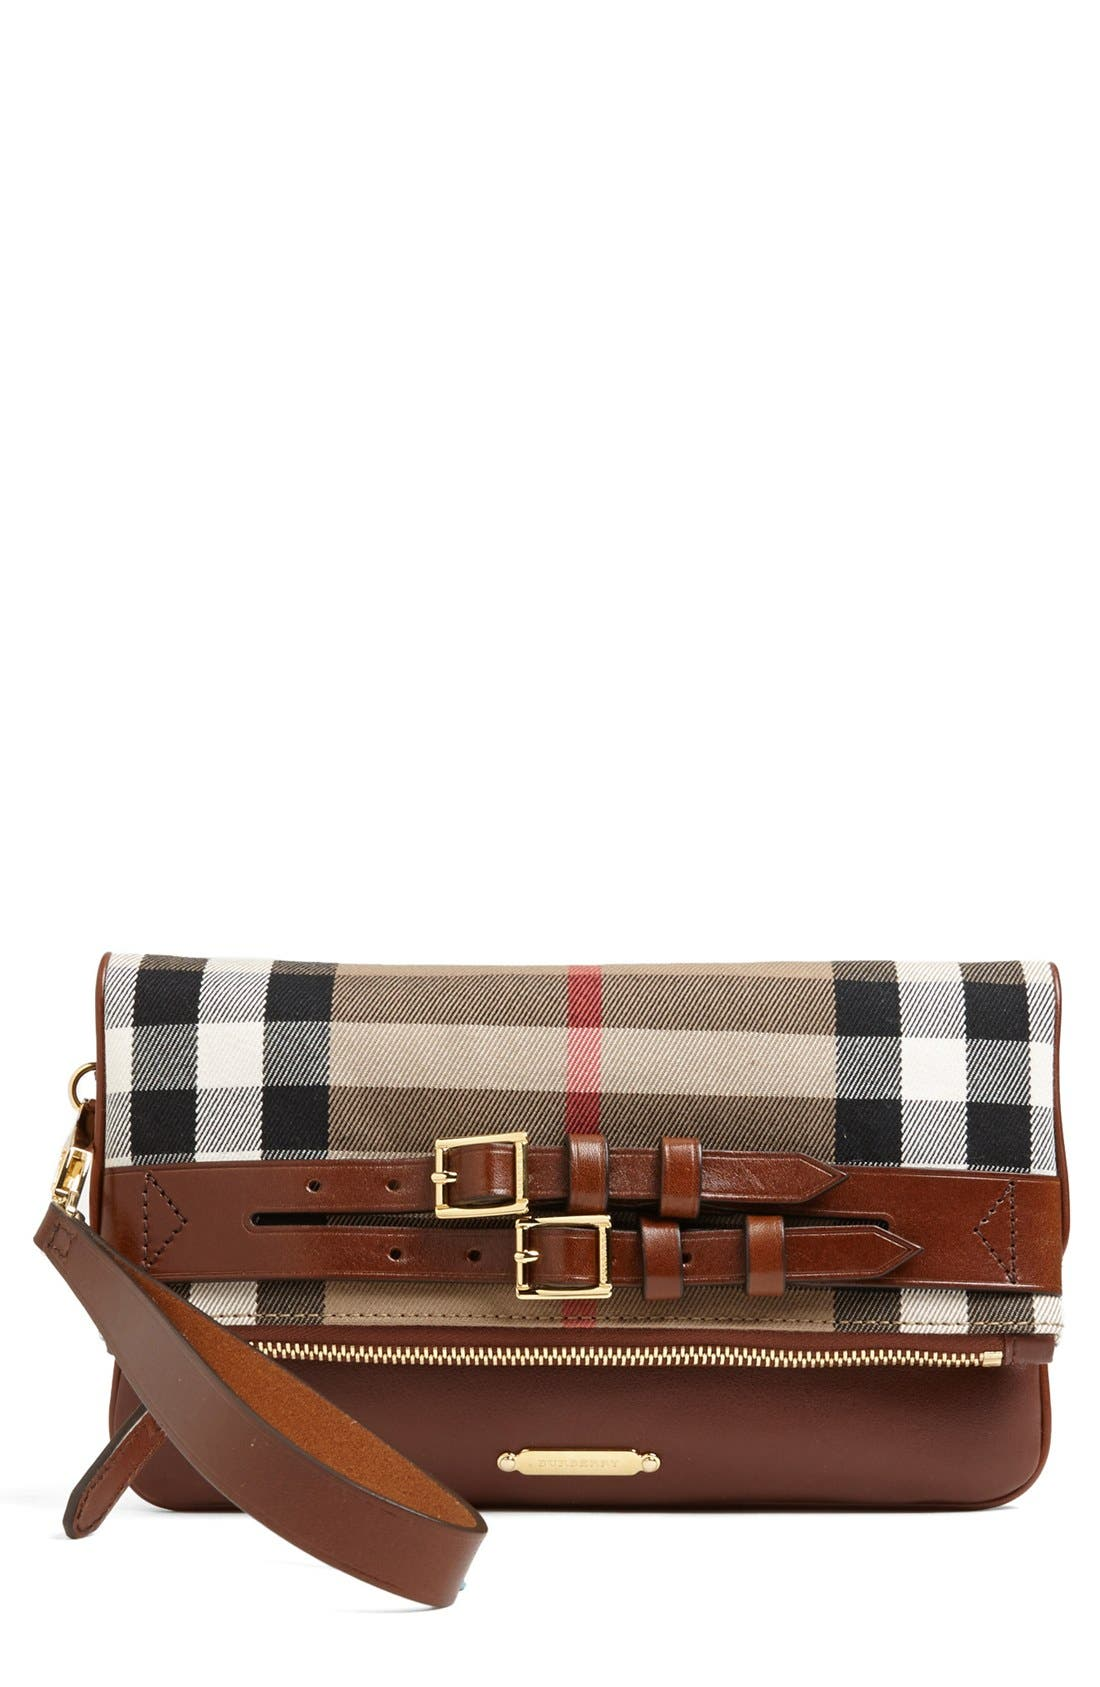 Alternate Image 1 Selected - Burberry 'Adeline' Belted Foldover Flap Clutch